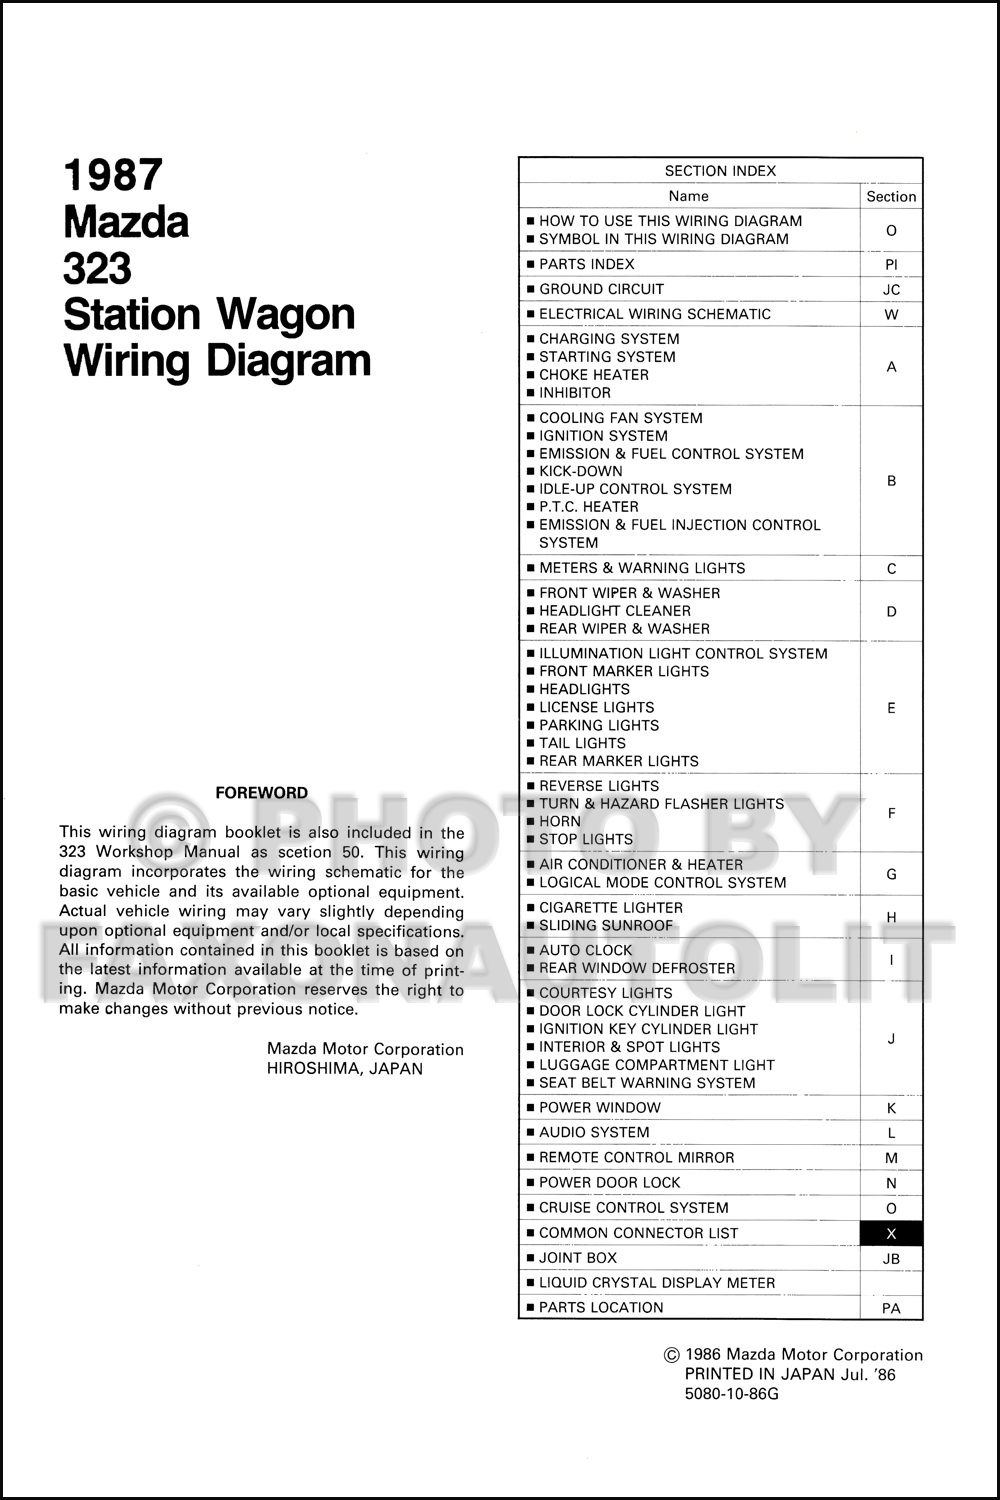 wiring diagram on 1987 mazda 323 wagon